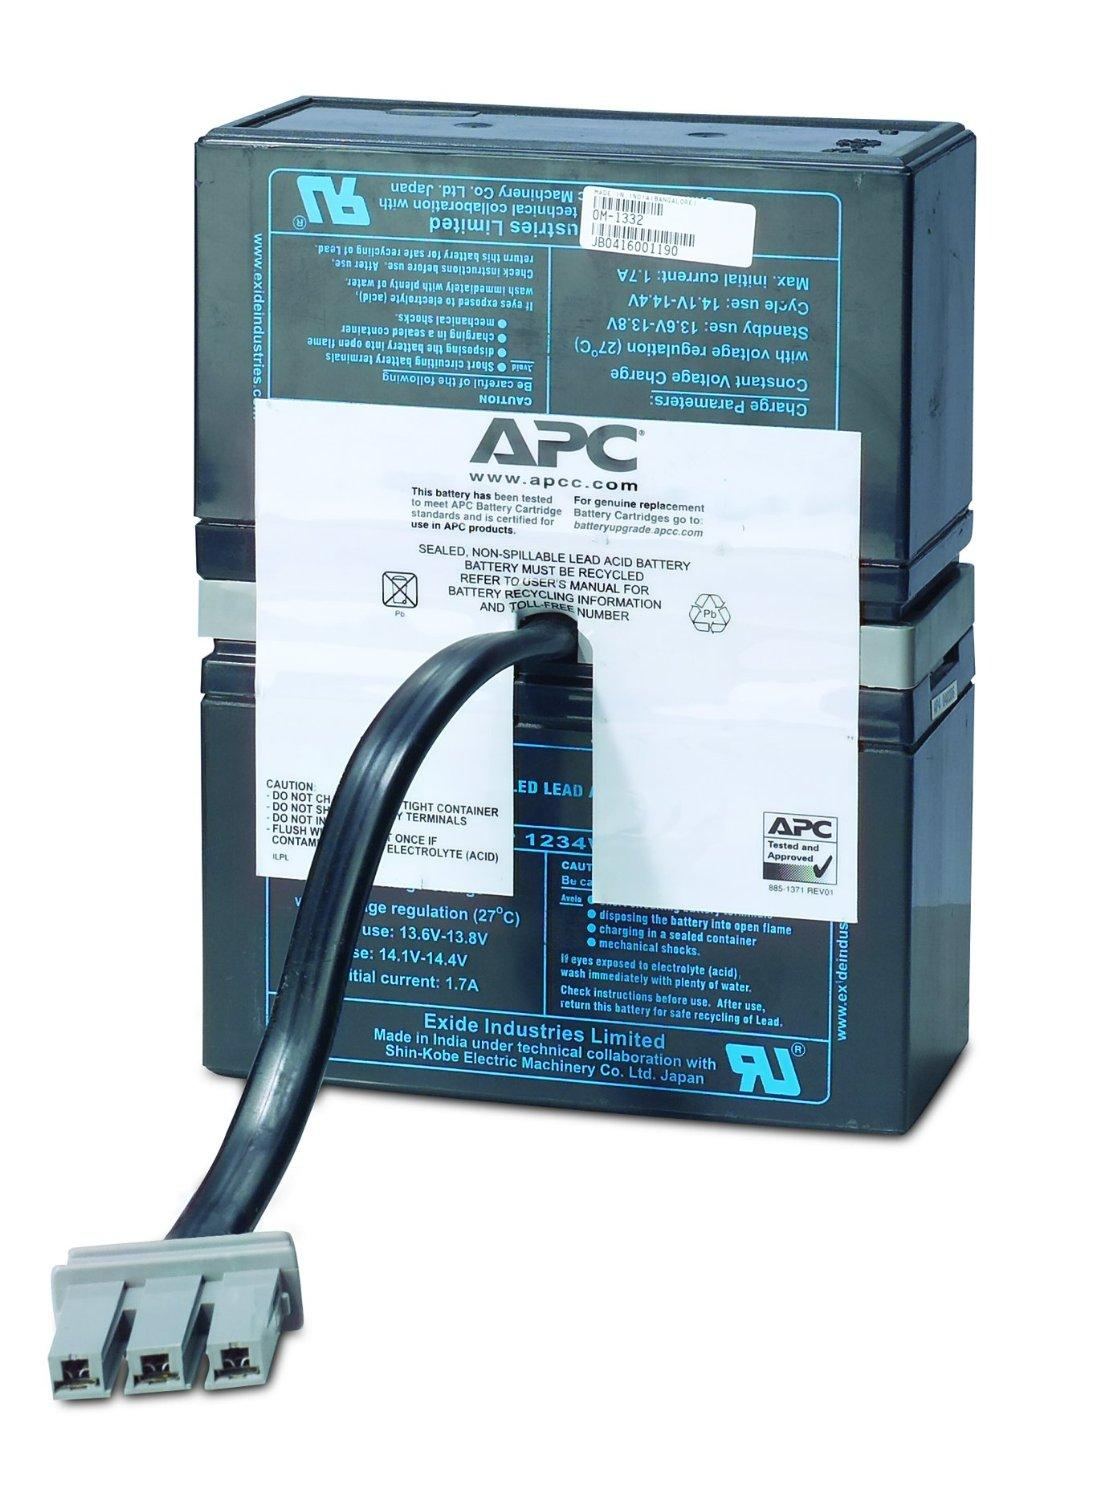 amazon com apc ups replacement battery cartridge for ups models rh amazon com Apc 1500 Battery Backup Manual Apc Smart-UPS 1500 Battery